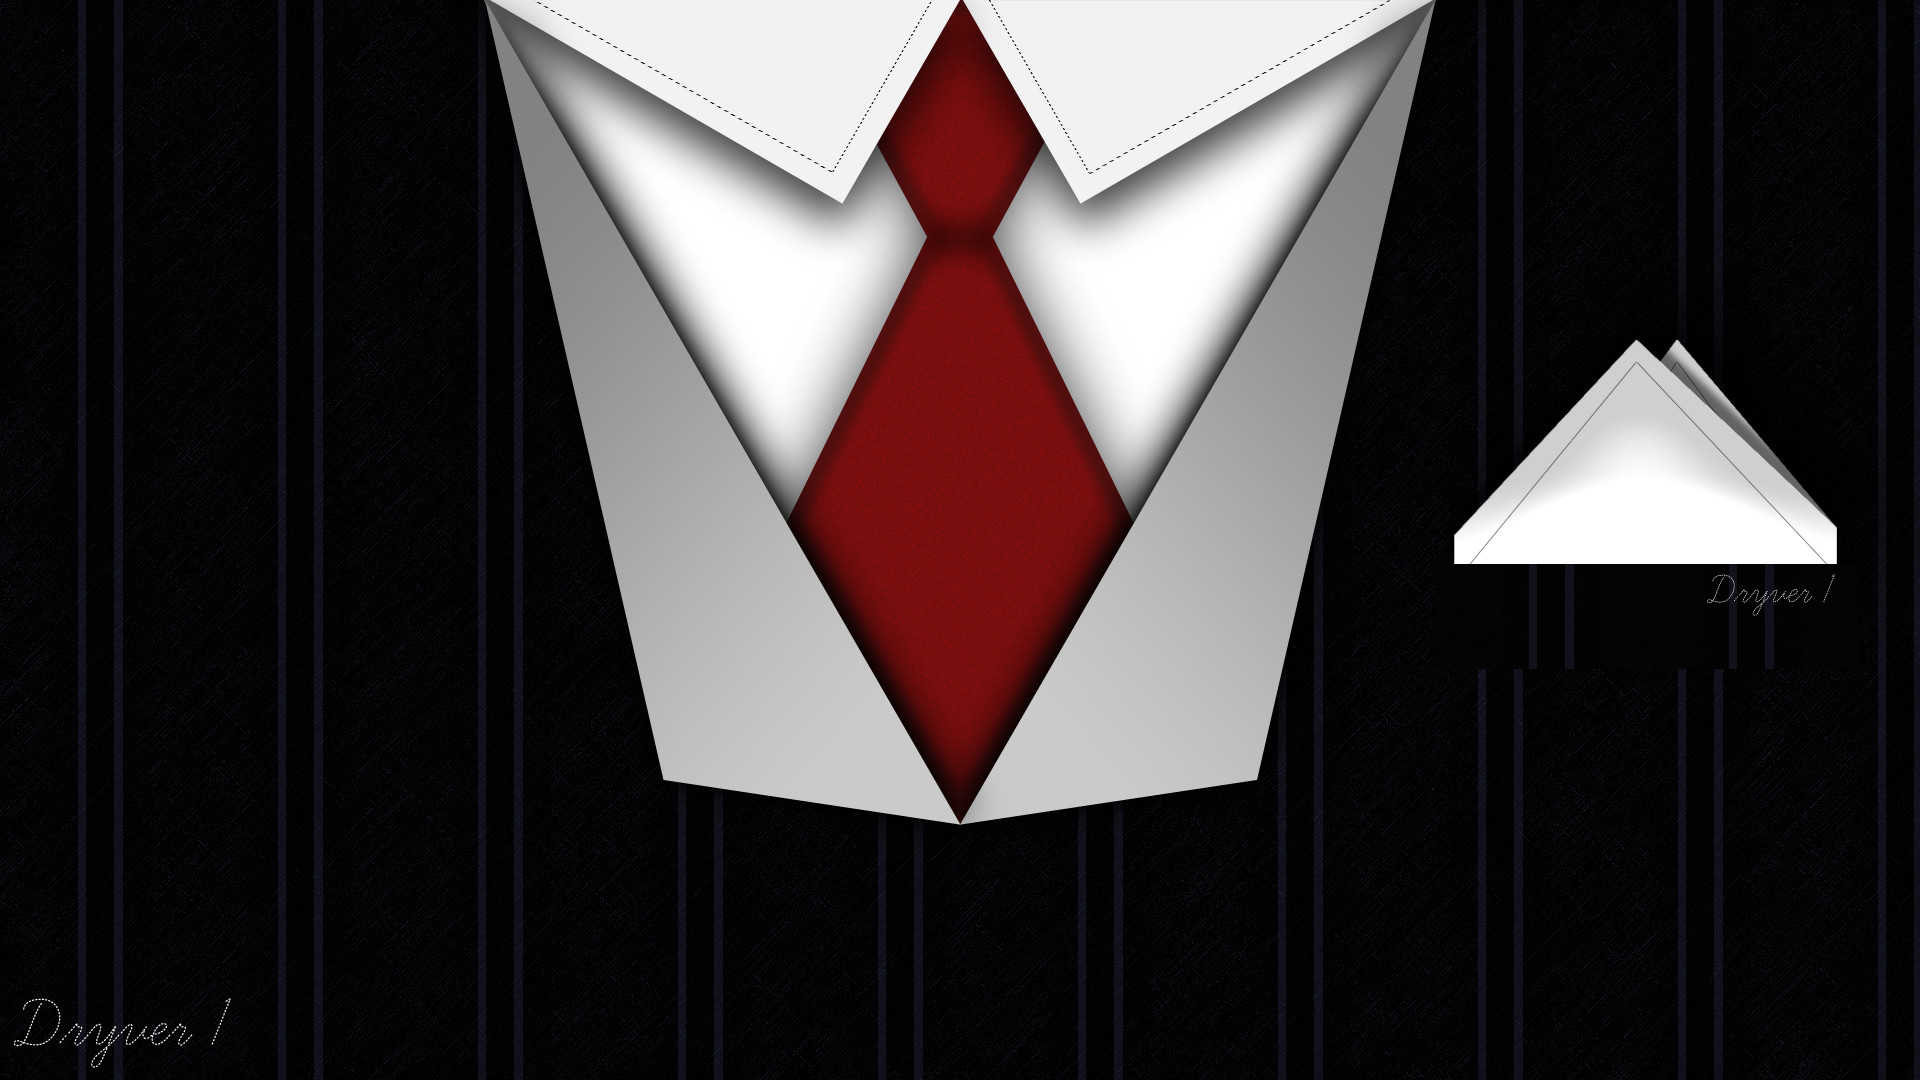 Top Suit And Tie Iphone Wallpaper Images for Pinterest